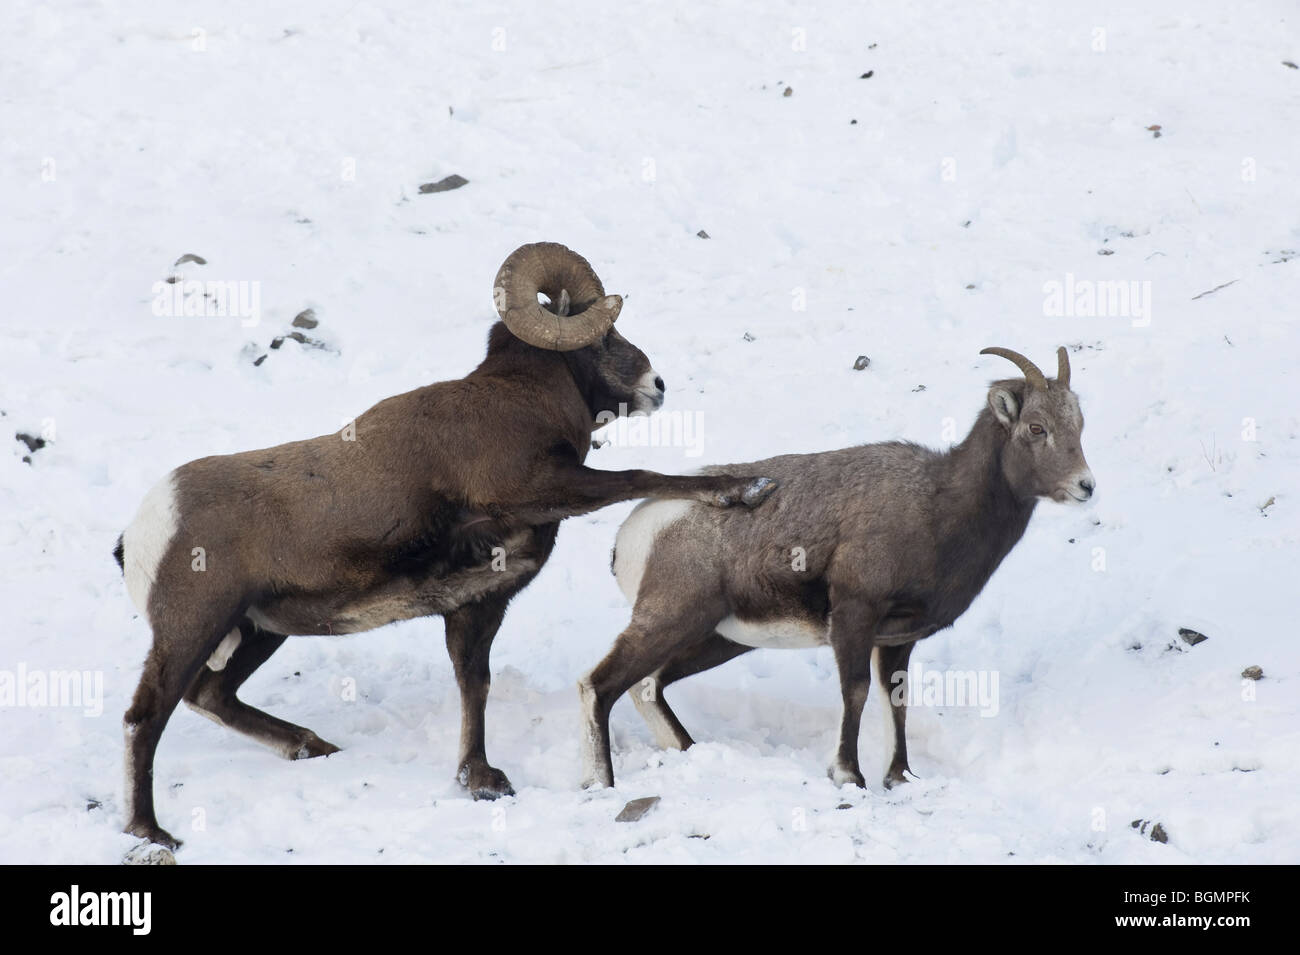 Two Bighorn Sheep on a snow covered slope in Jasper National Park Alberta Canada - Stock Image